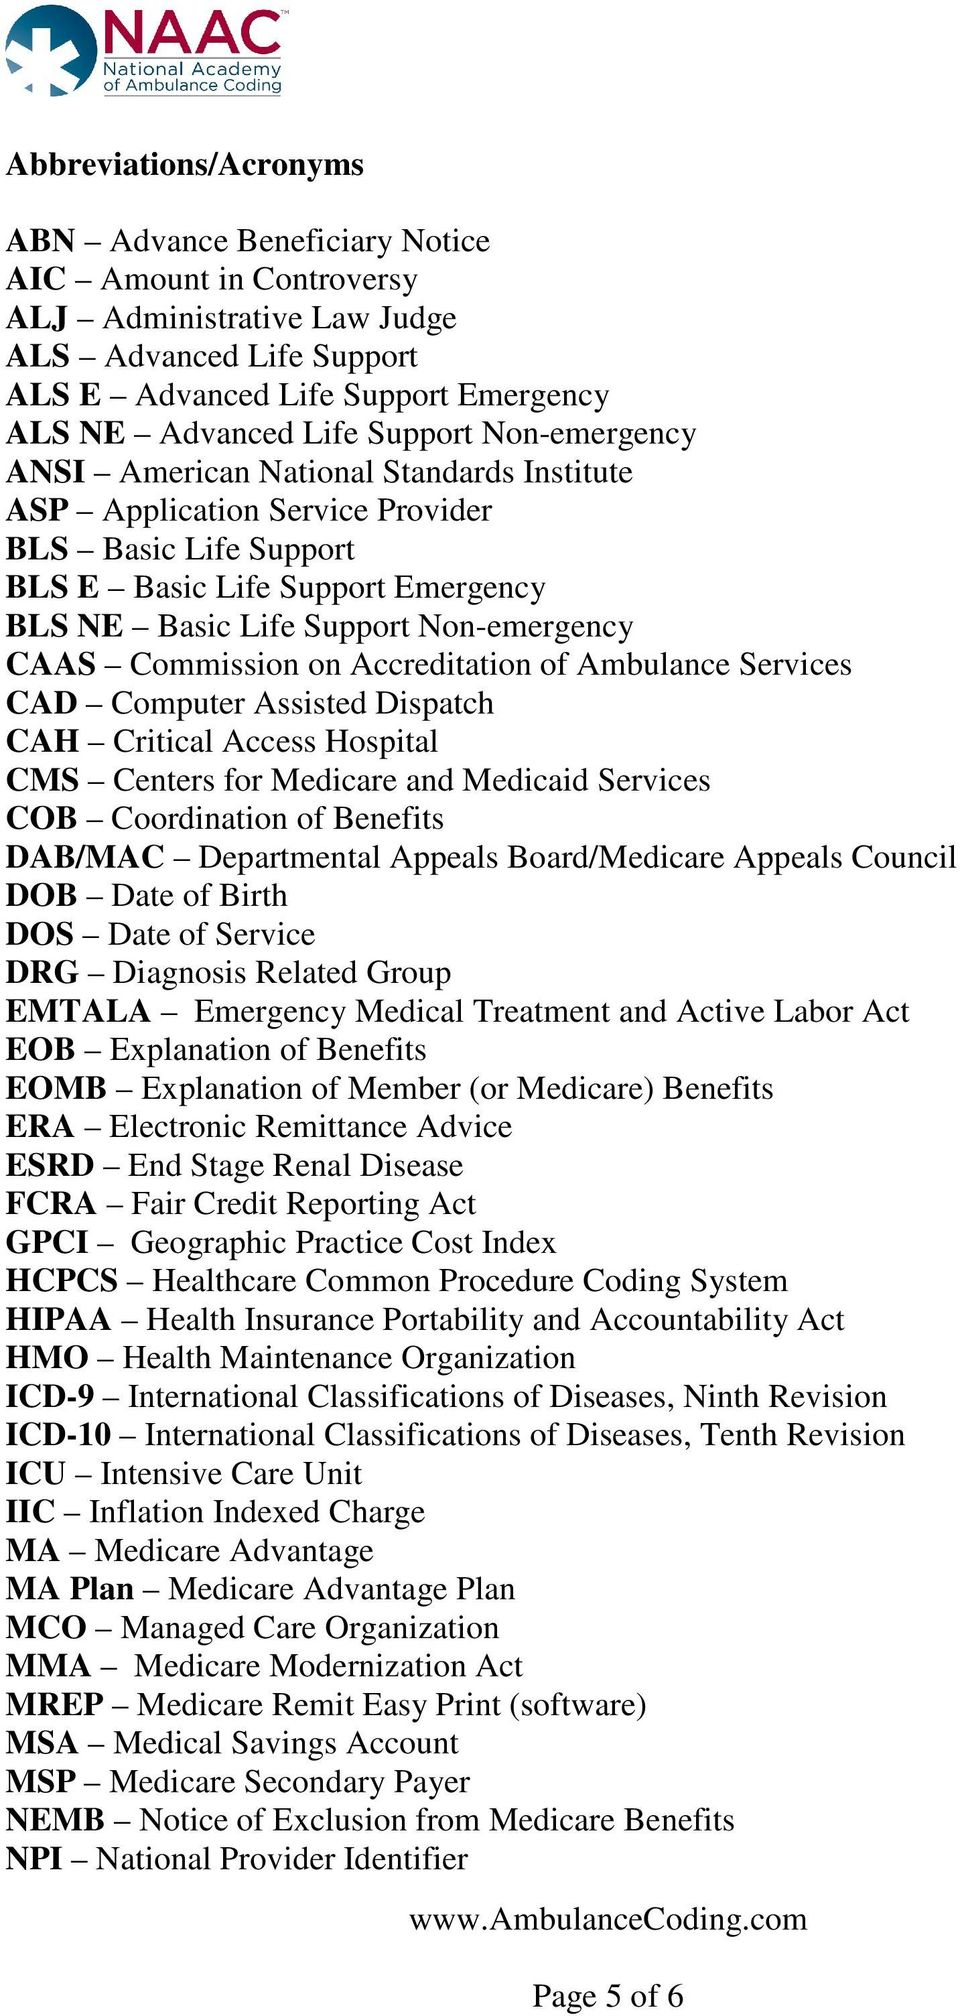 CAAS Commission on Accreditation of Ambulance Services CAD Computer Assisted Dispatch CAH Critical Access Hospital CMS Centers for Medicare and Medicaid Services COB Coordination of Benefits DAB/MAC